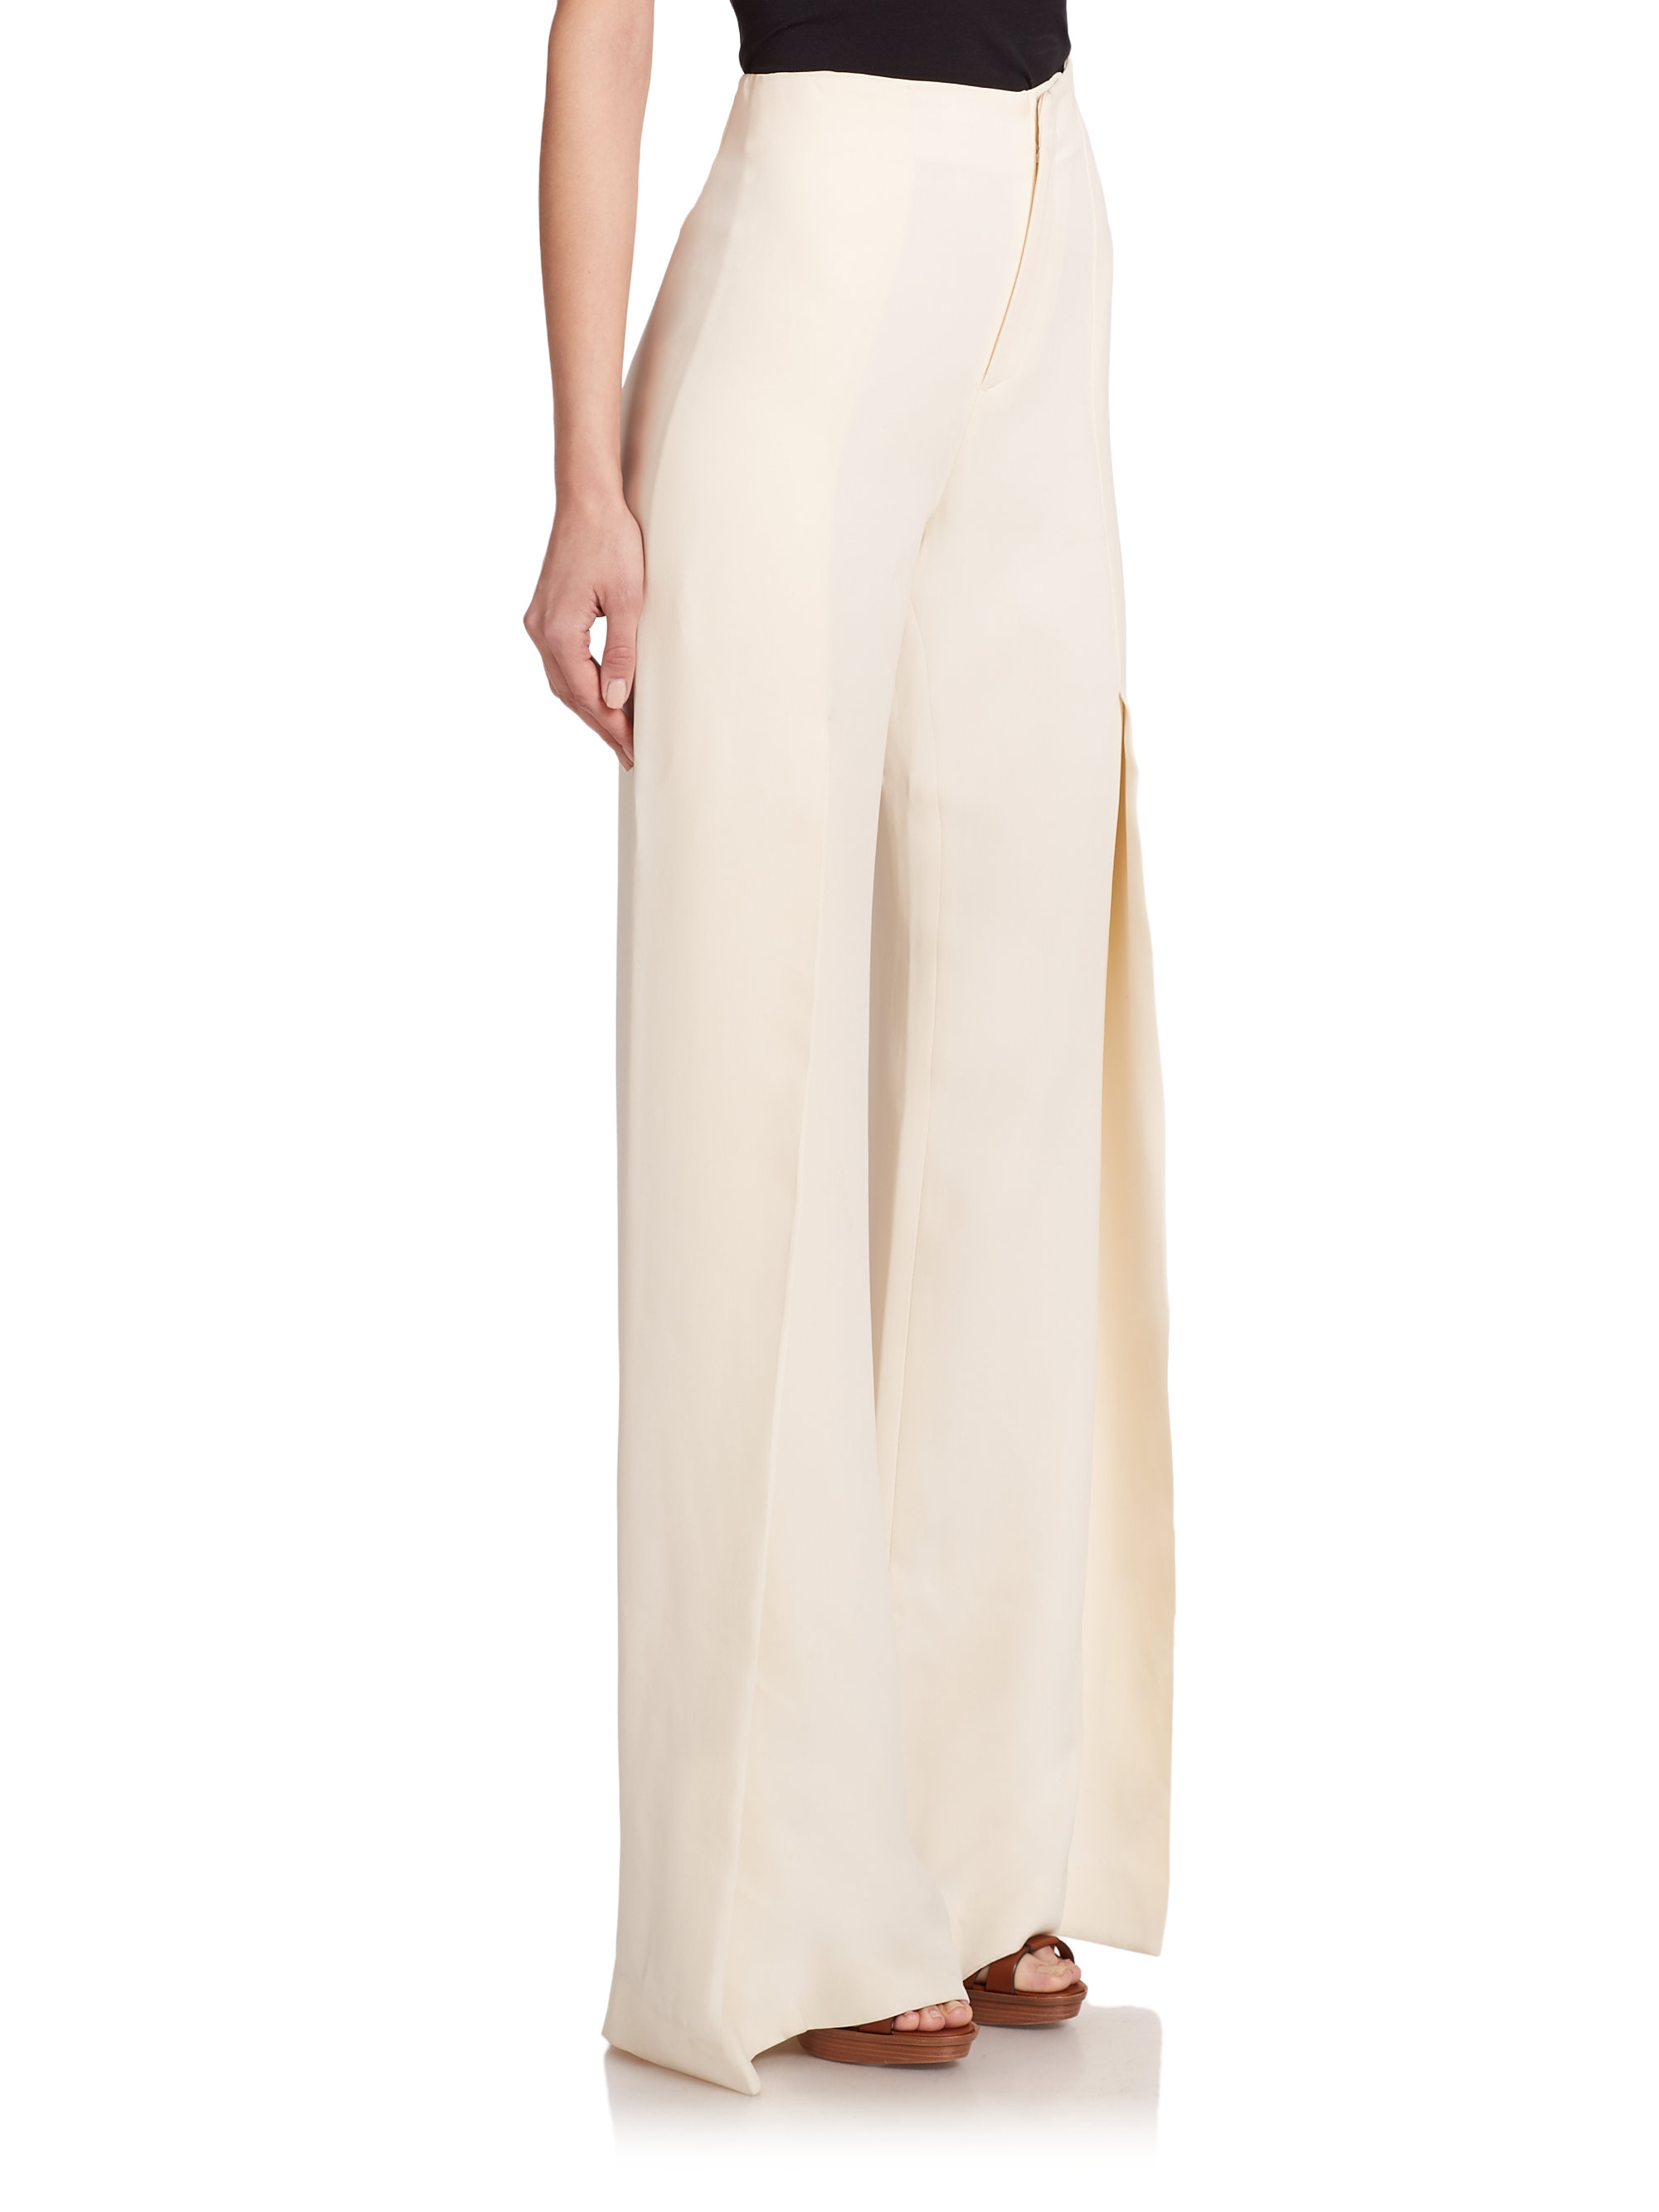 Lyst - Ralph lauren Wide-leg Wool Pants in Natural